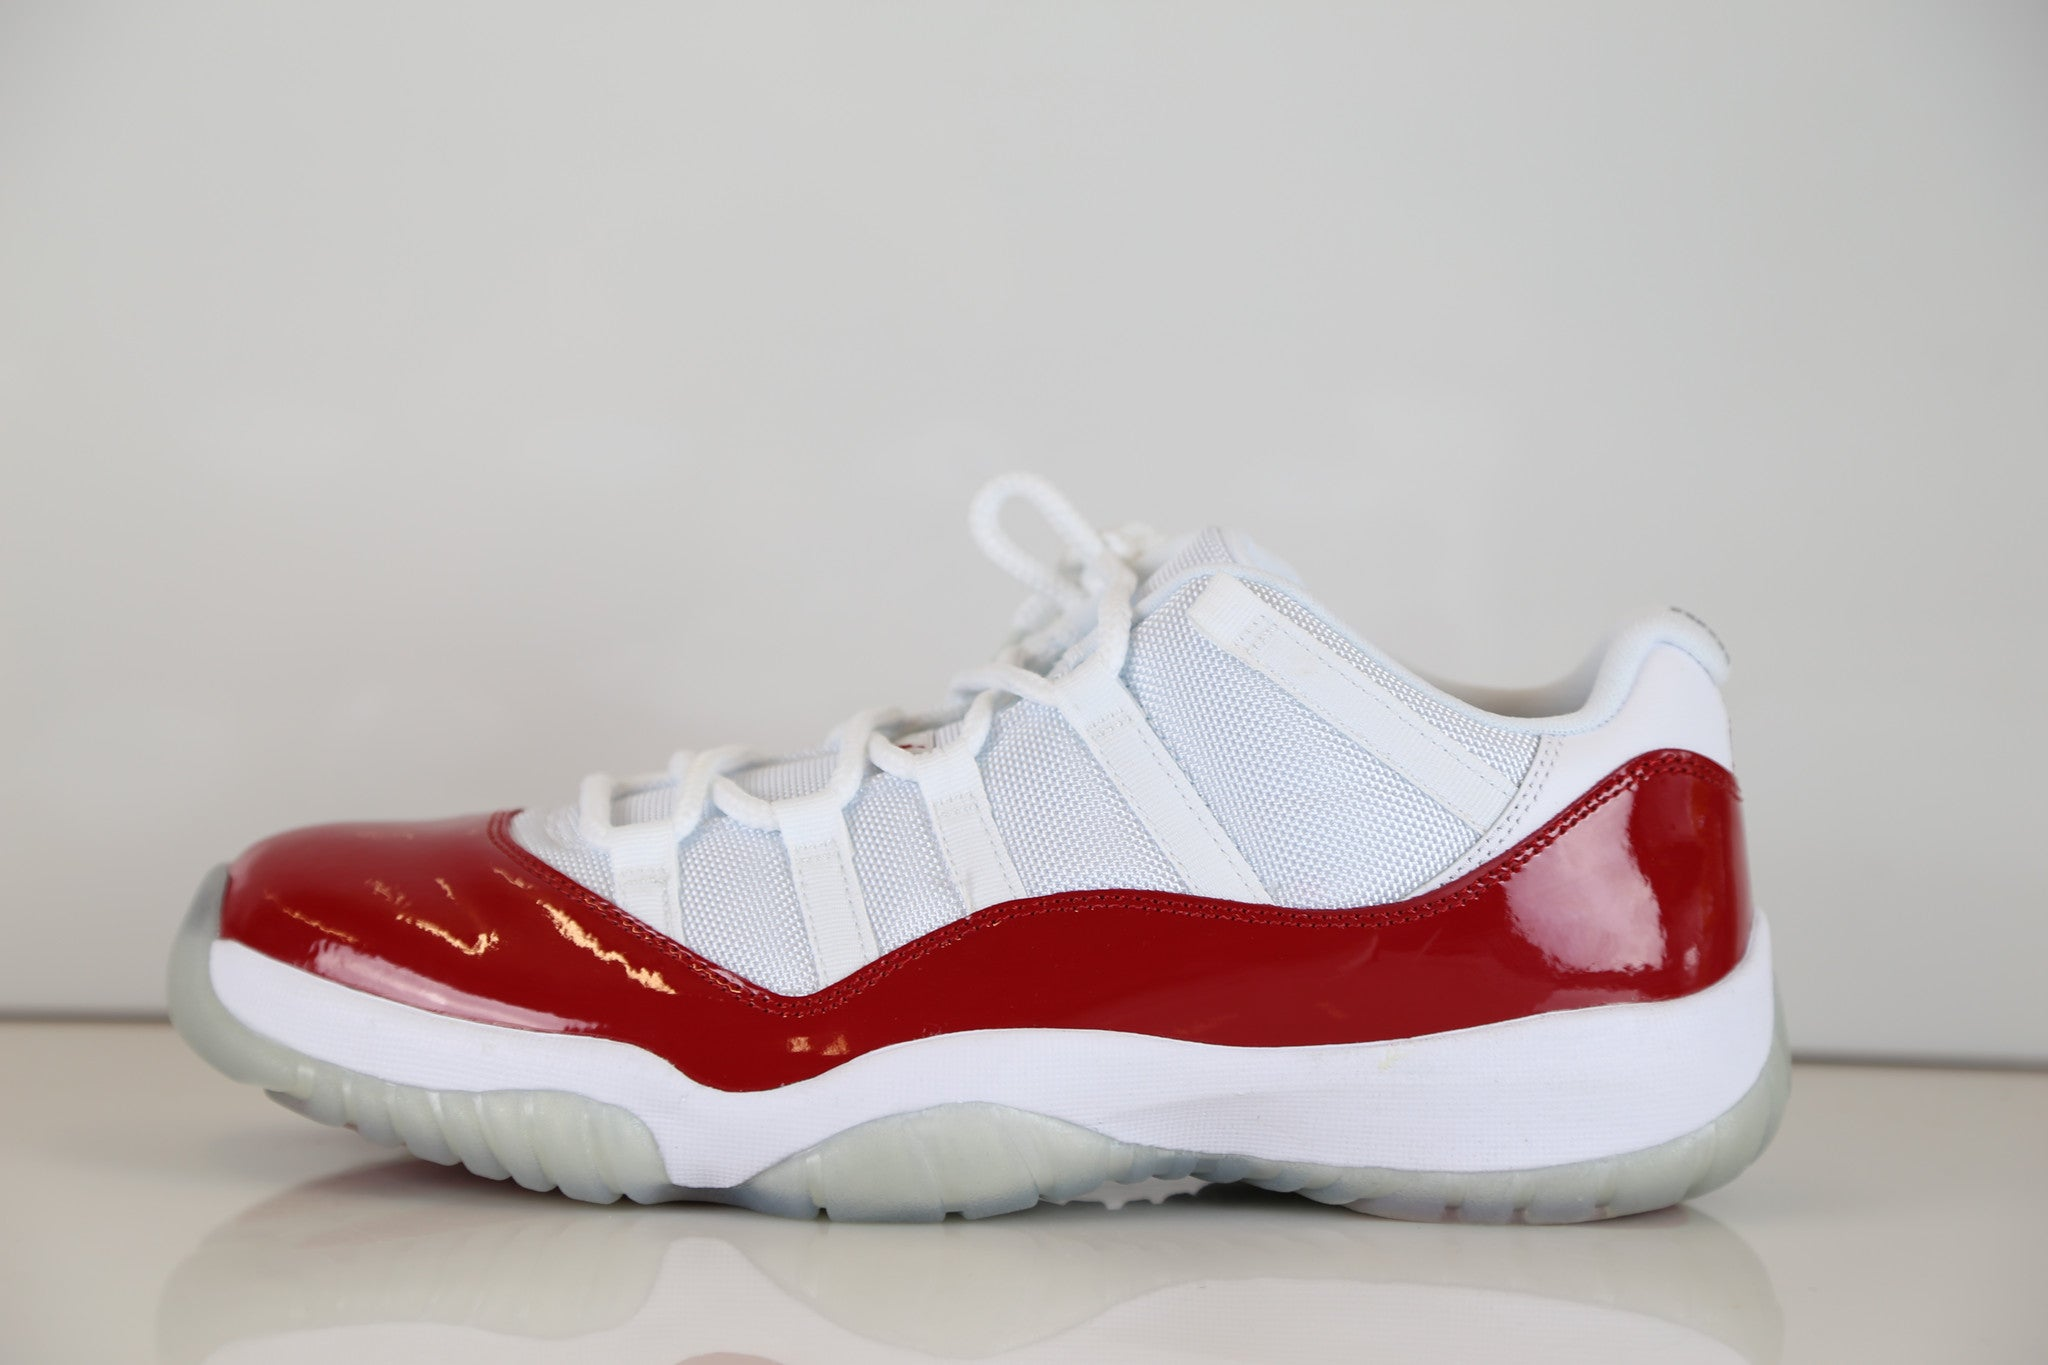 Nike Air Jordan Retro 11 XI Low Varsity Red Cherry White 528895-102 ... 77382ba19